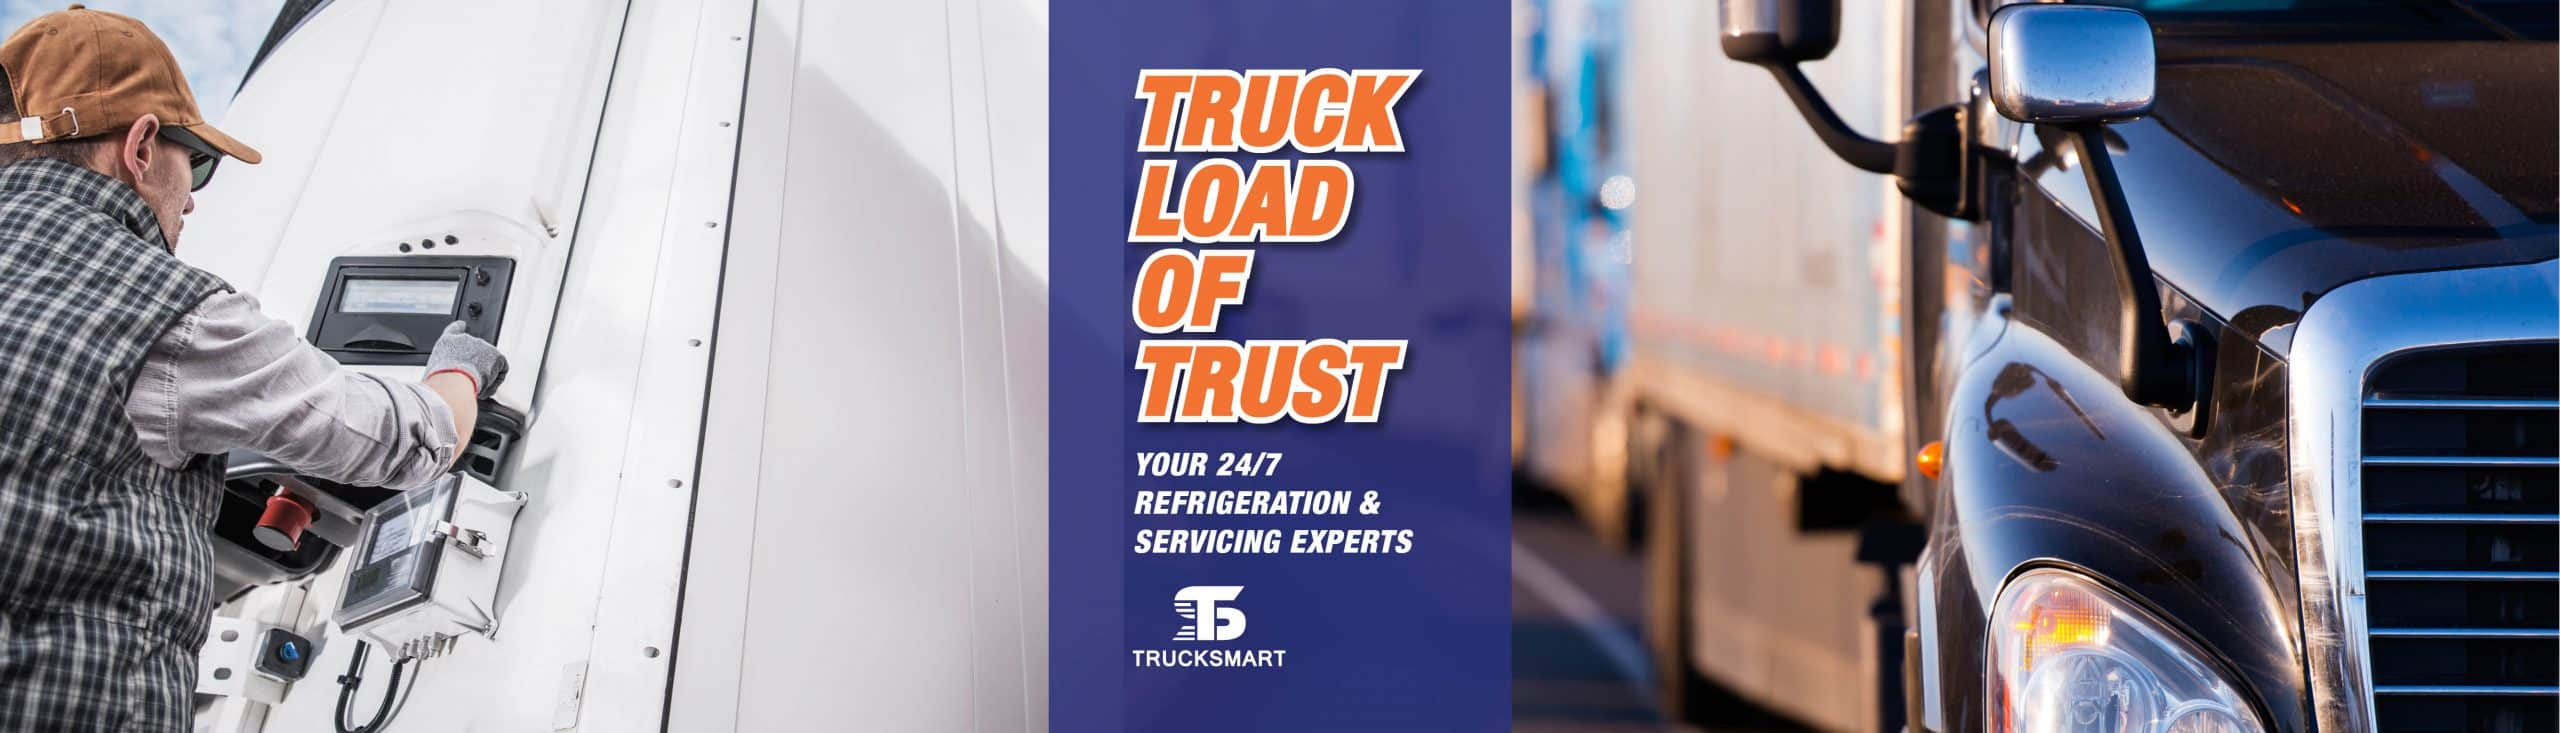 Truckload of Trust Clements Air Conditioning Trucksmart